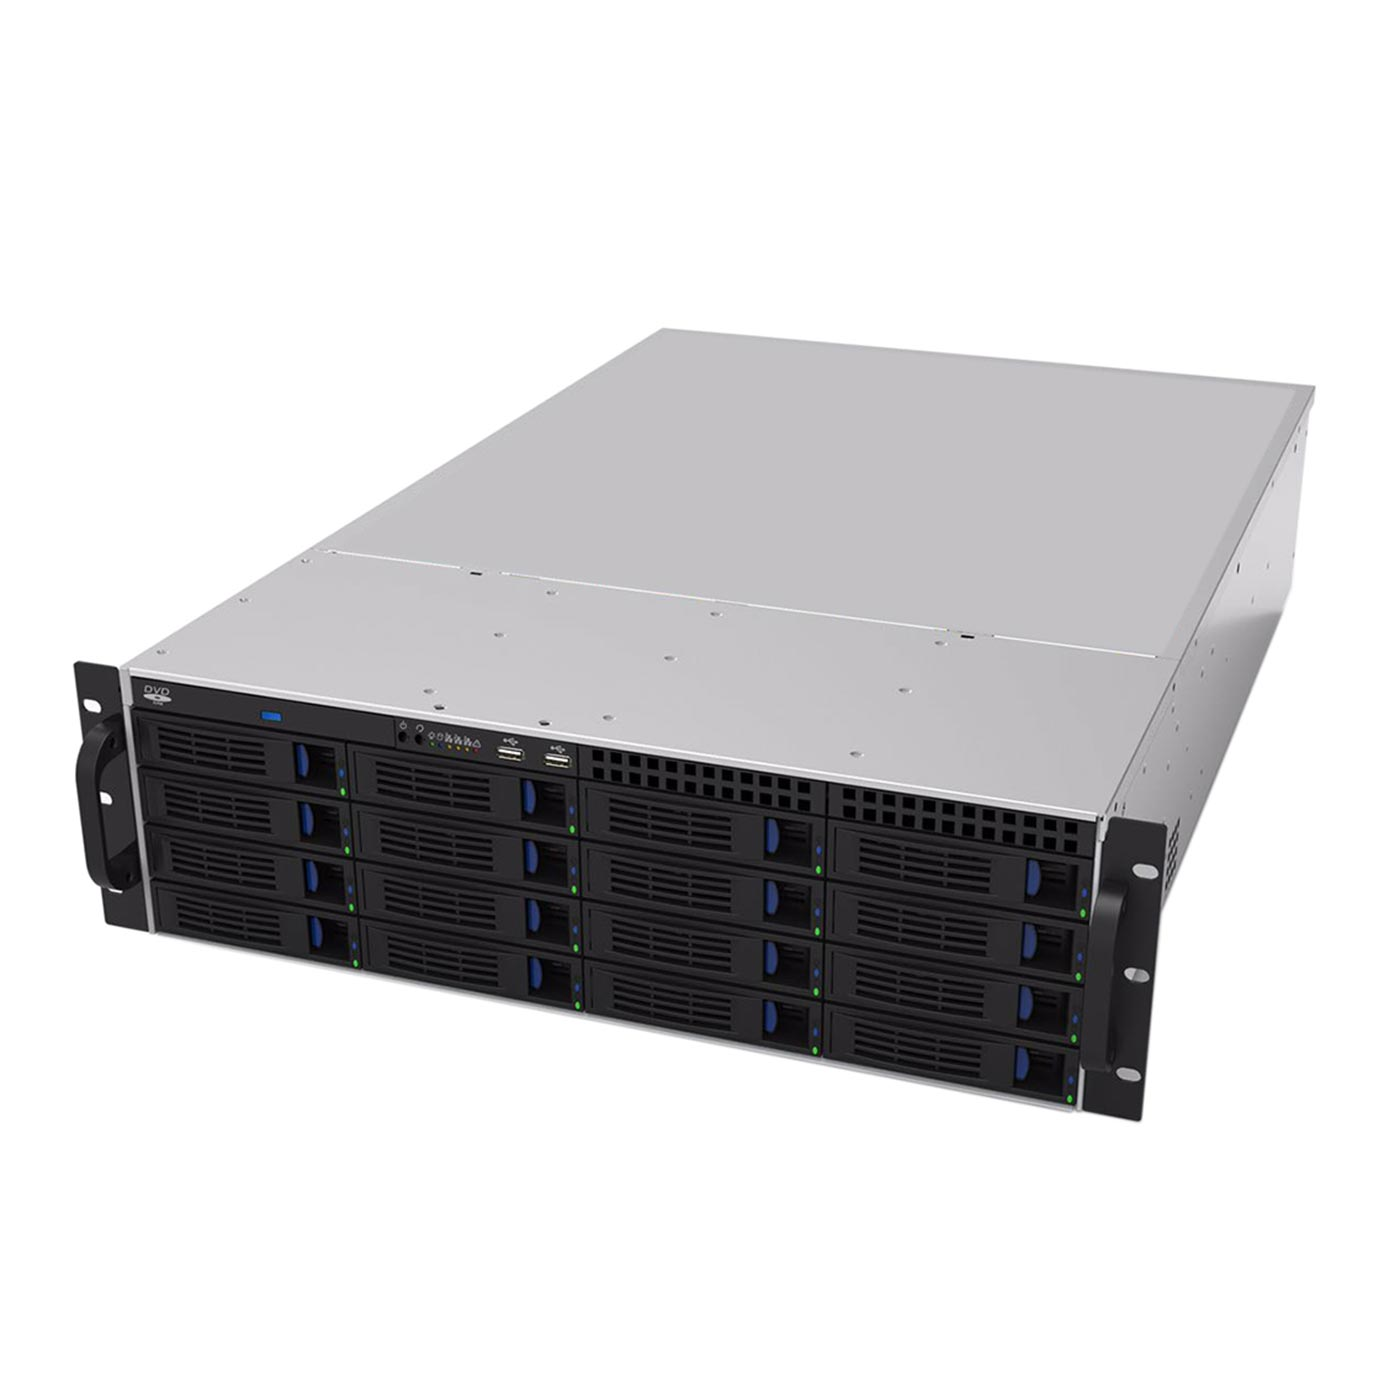 Серверный корпус 3U NR-R316 БП 2x1200Вт 16xHot Swap SAS/SATA (EATX 12x13, Slim CD, 650mm) черный